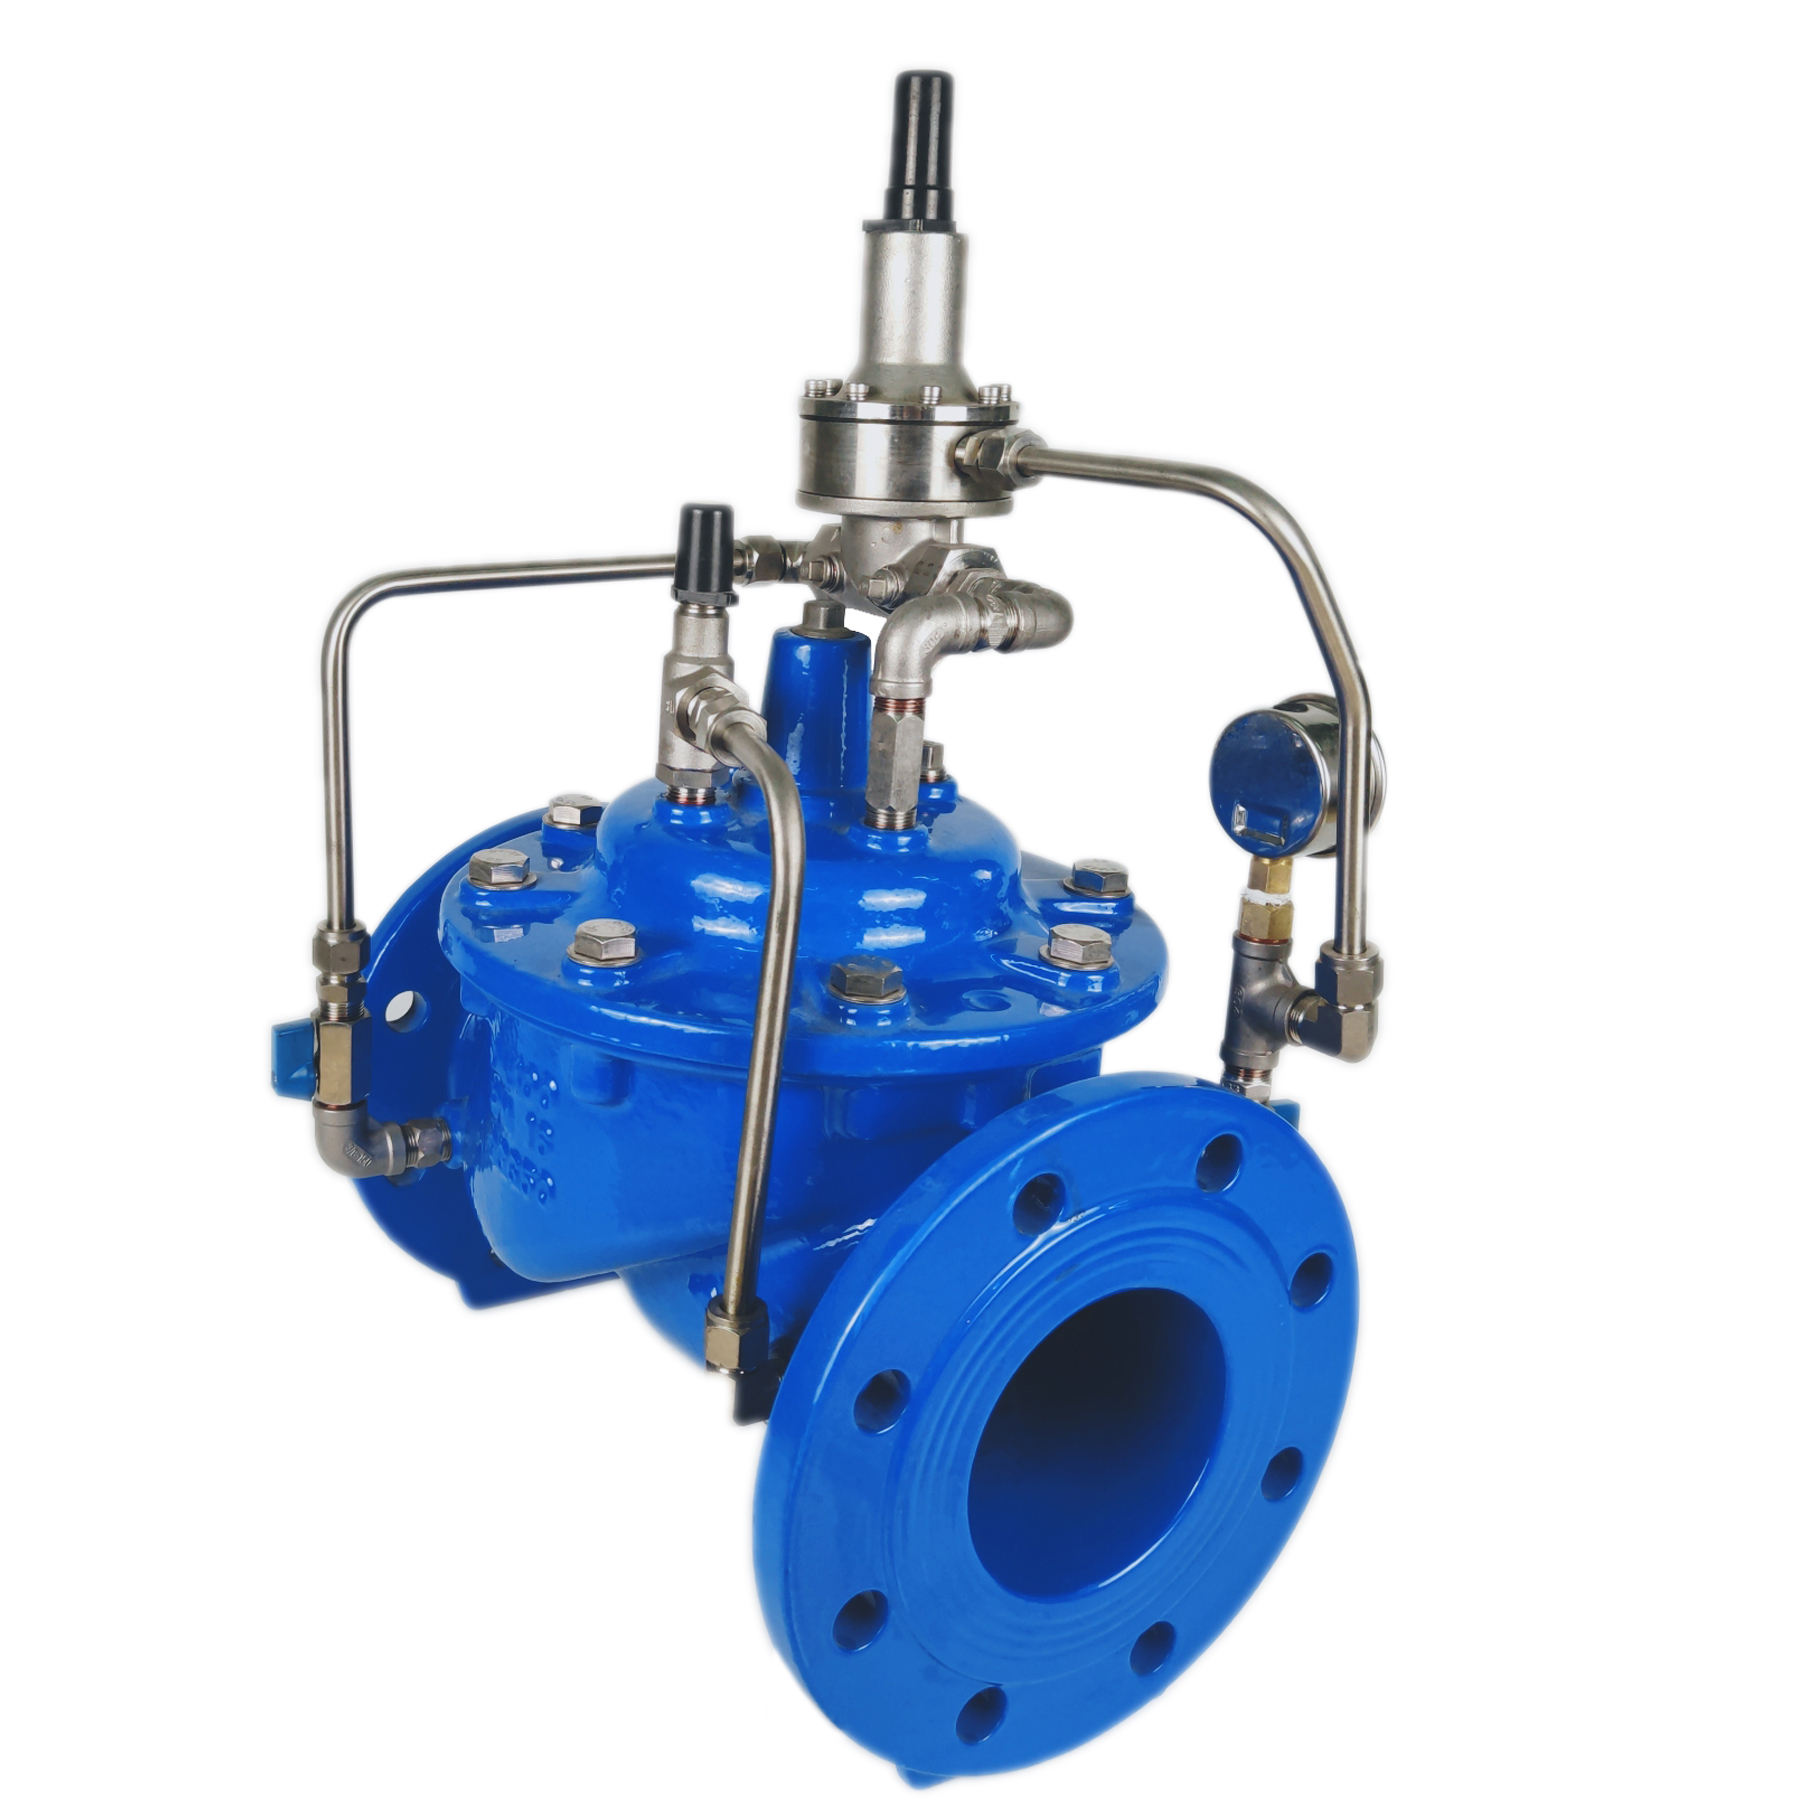 TOP best price Ductile iron flow control valve caliber 4 inches PN16 low pressure valve